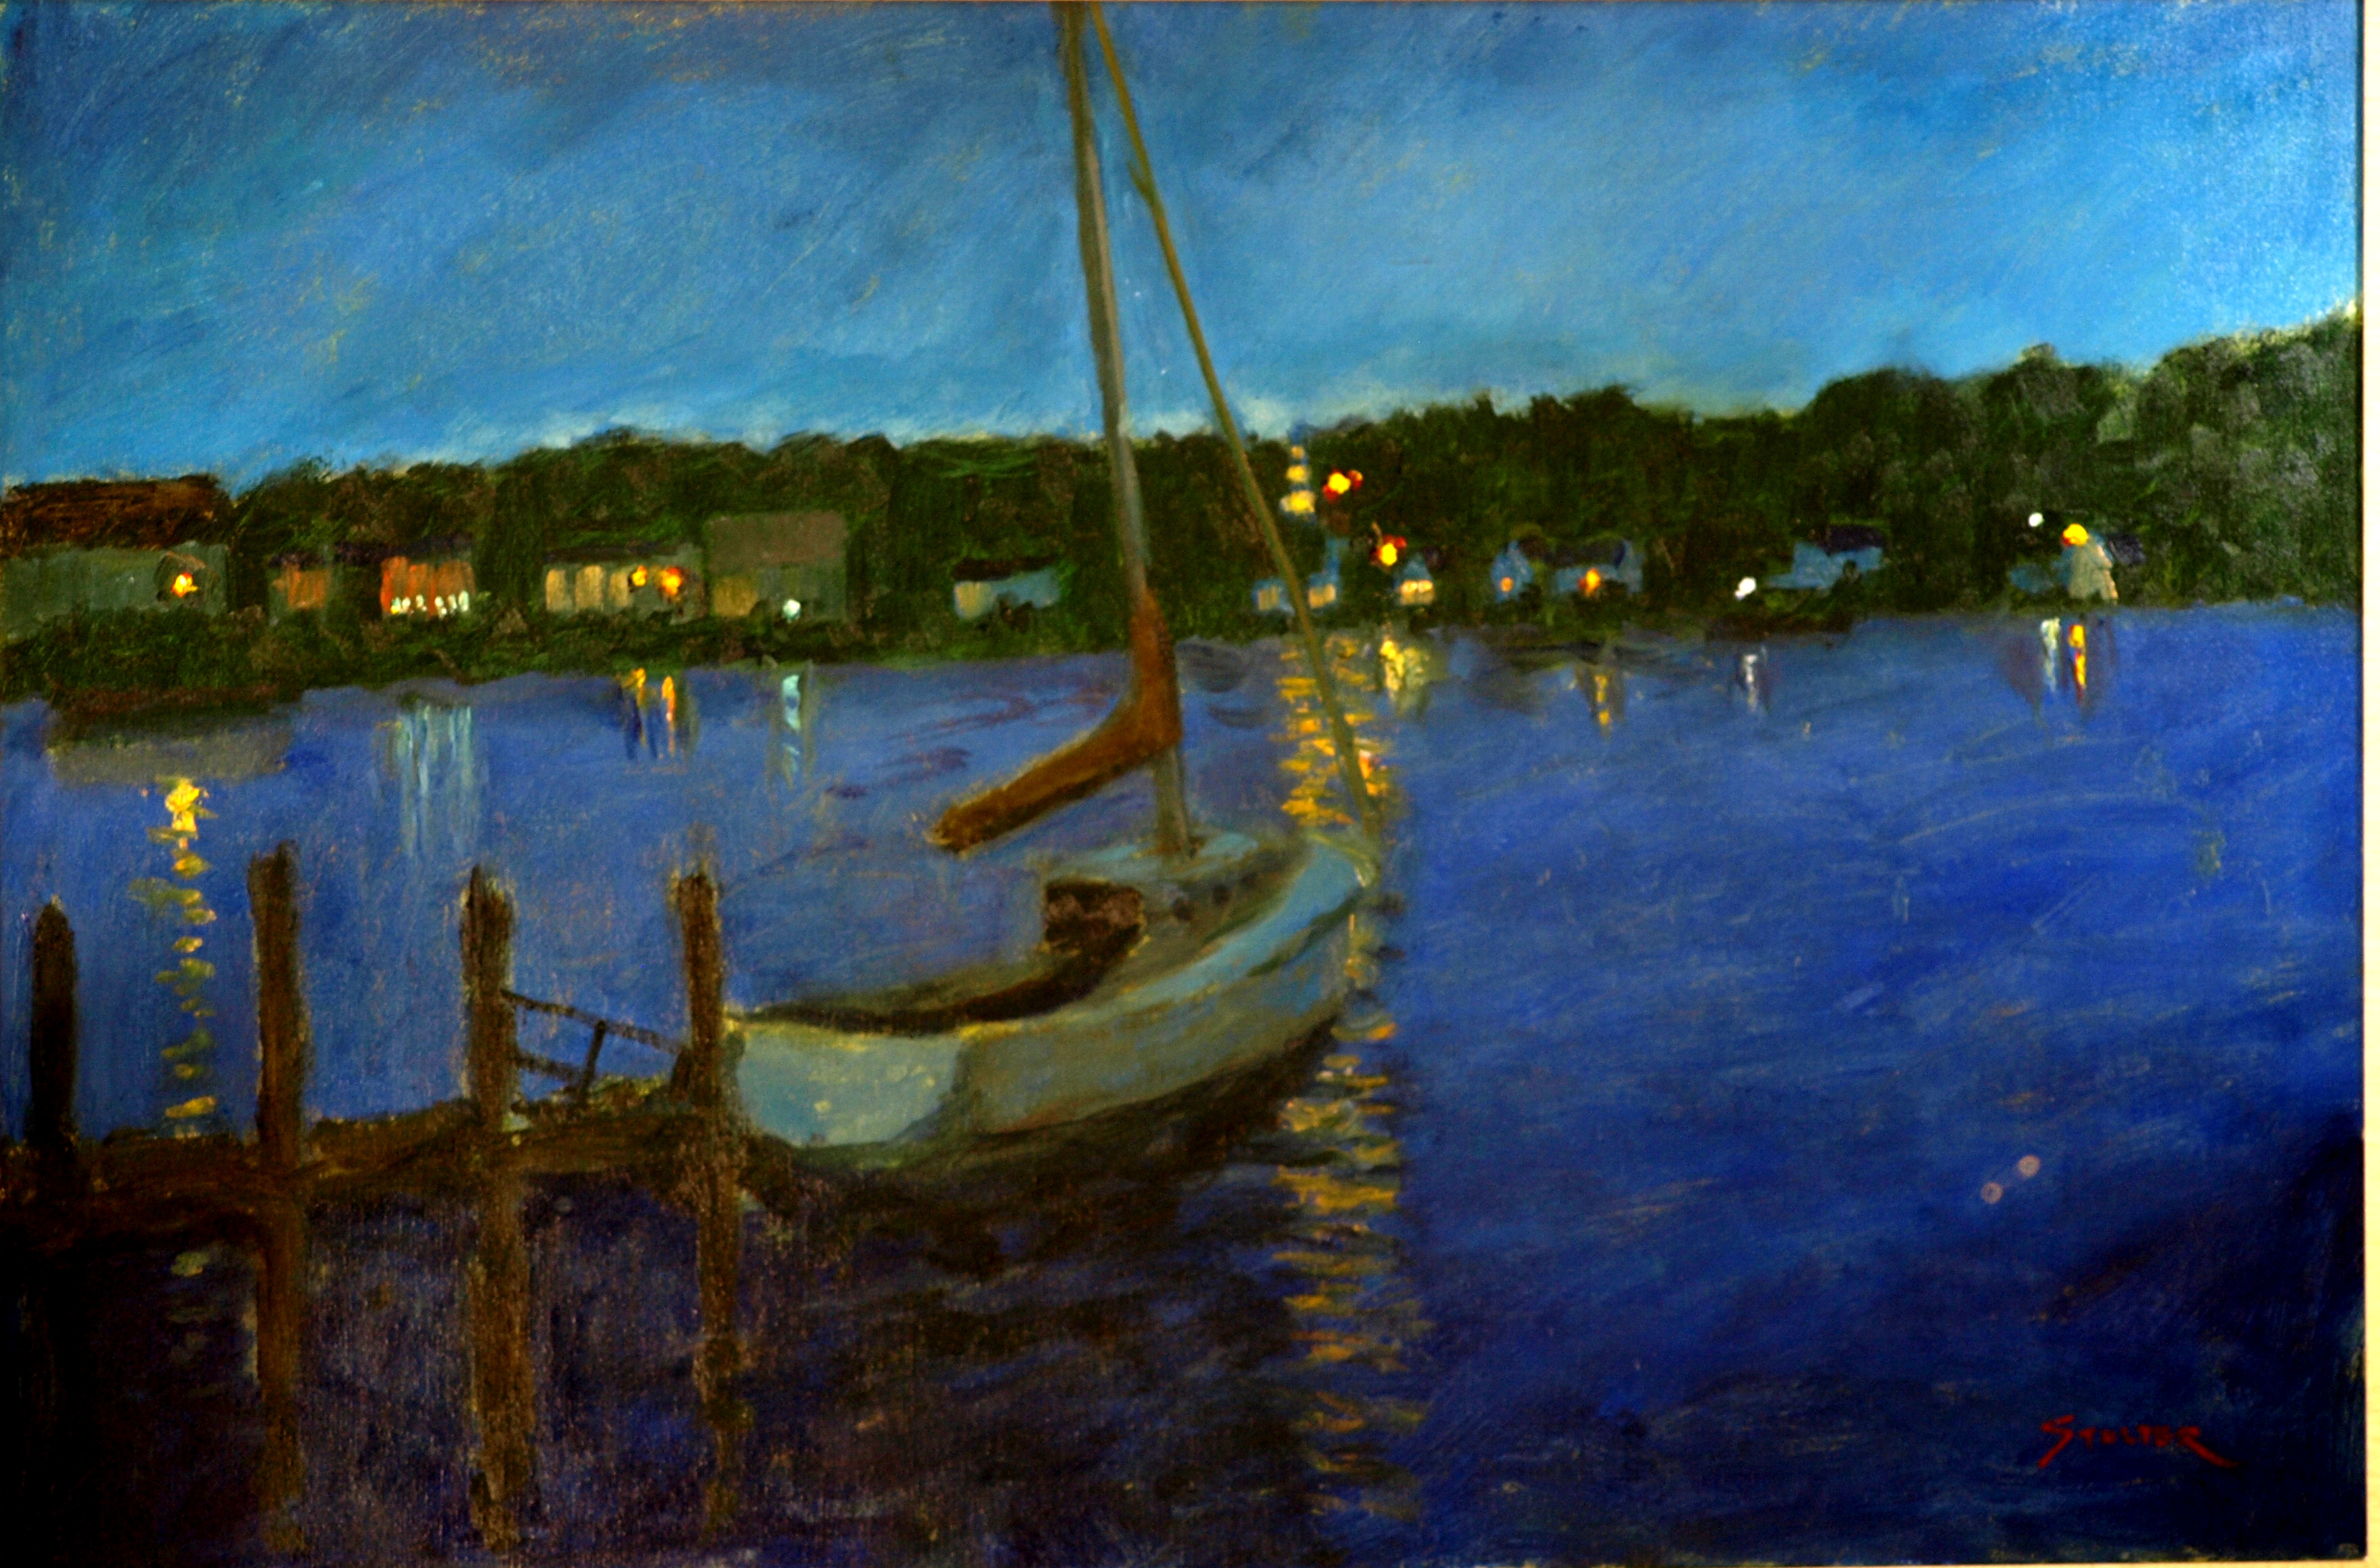 Night - Mystic River, Oil on Canvas, 24 x 36 Inches, by Richard Stalter, $850